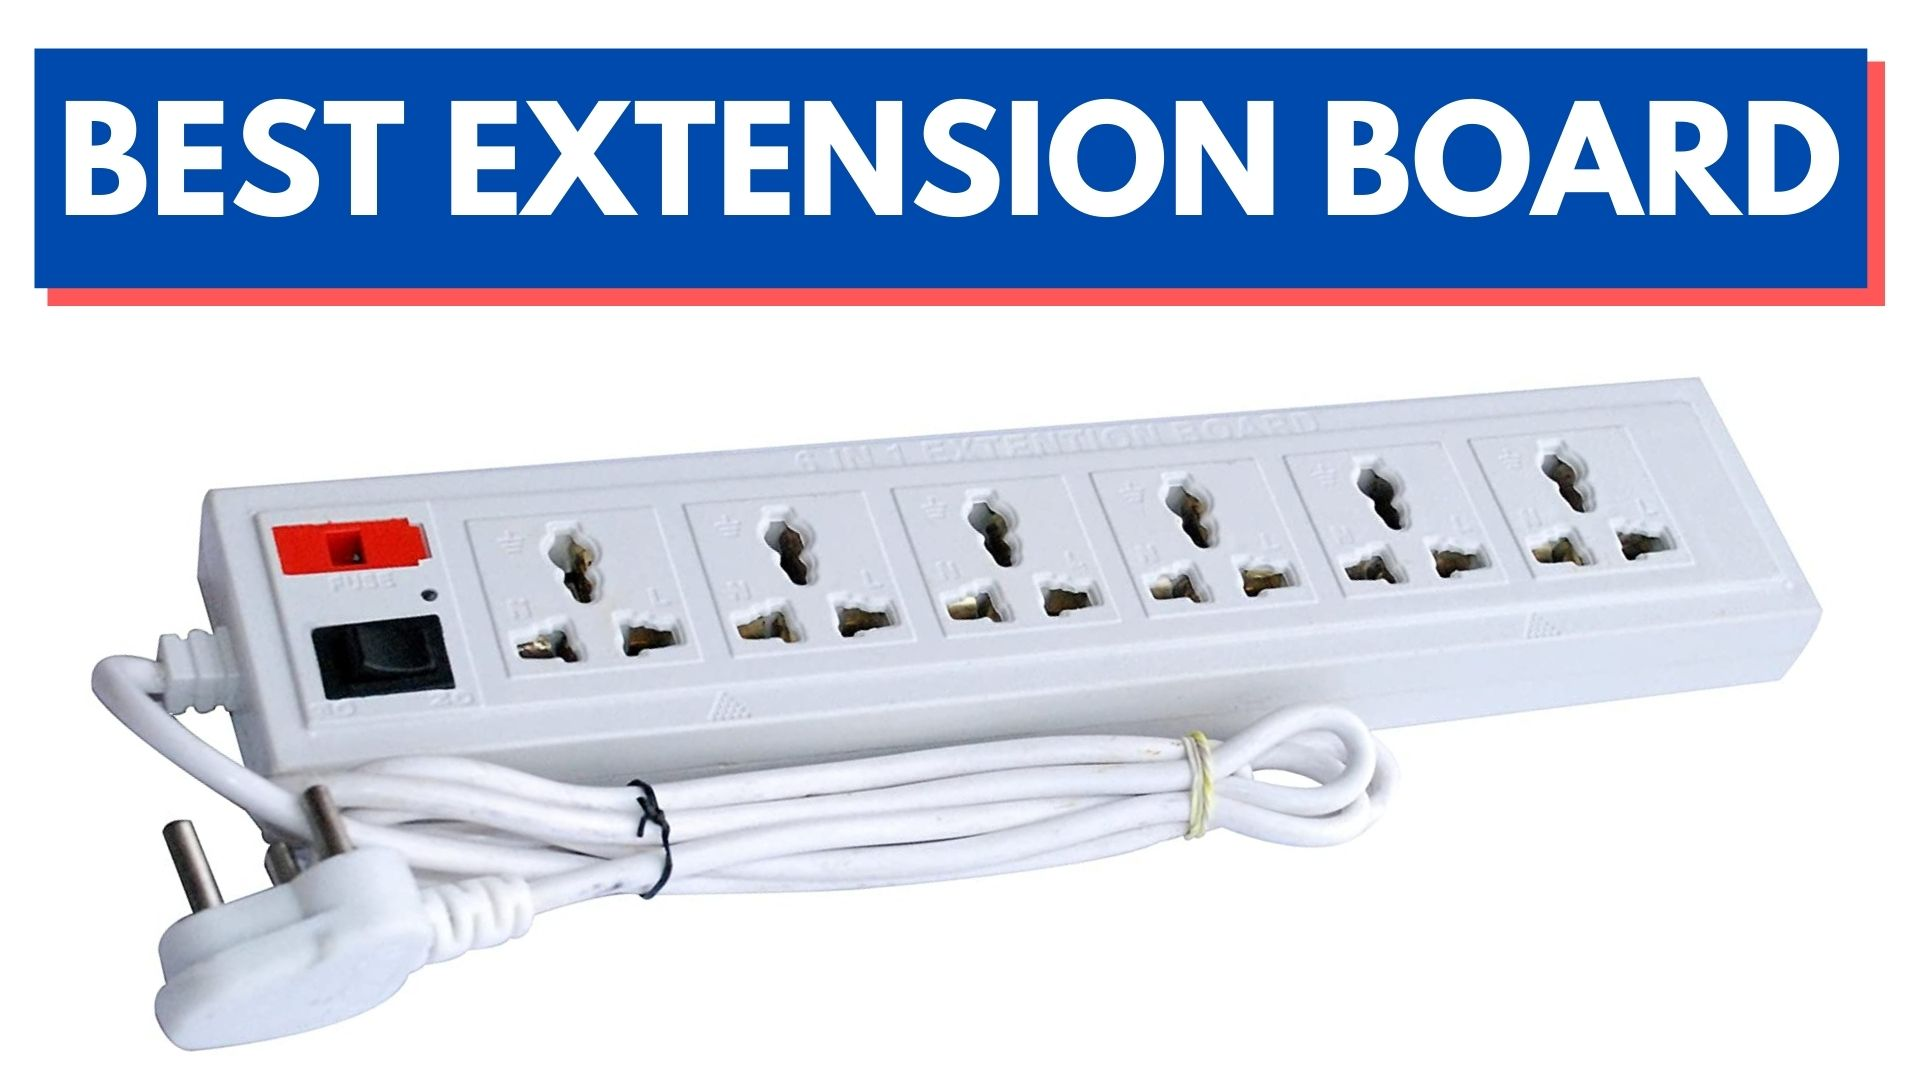 Best Extension Board